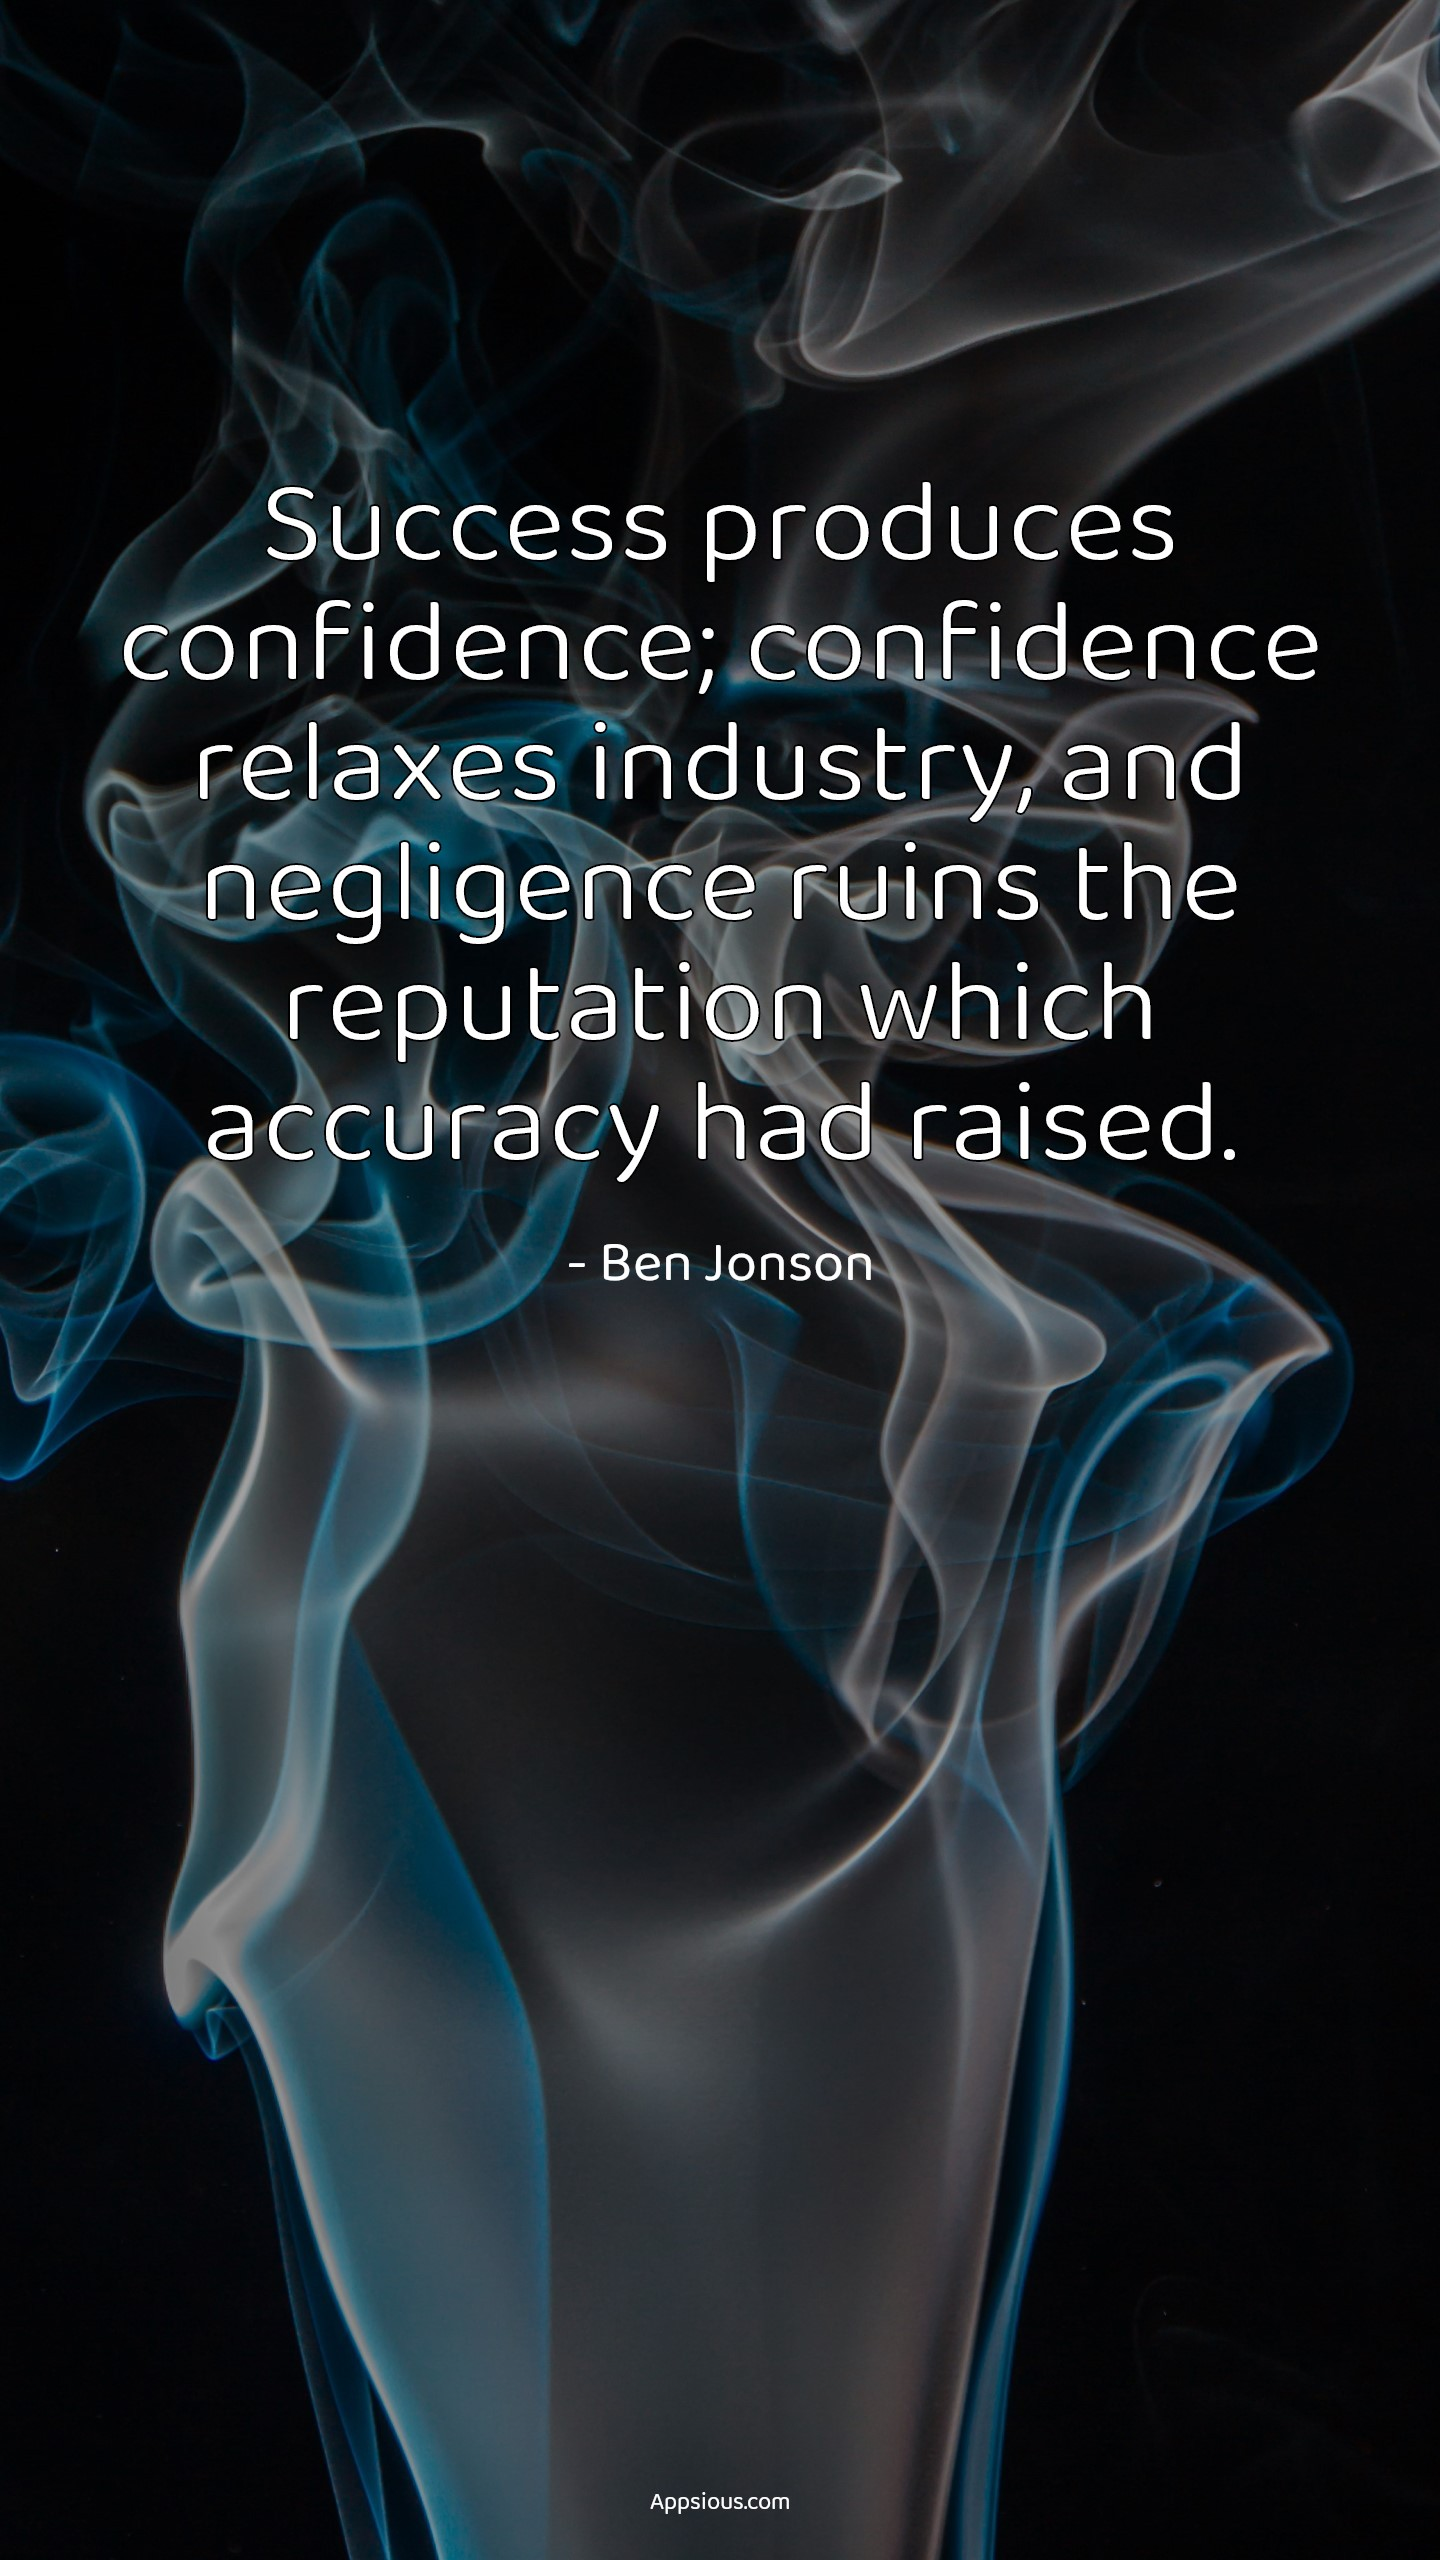 Success produces confidence; confidence relaxes industry, and negligence ruins the reputation which accuracy had raised.